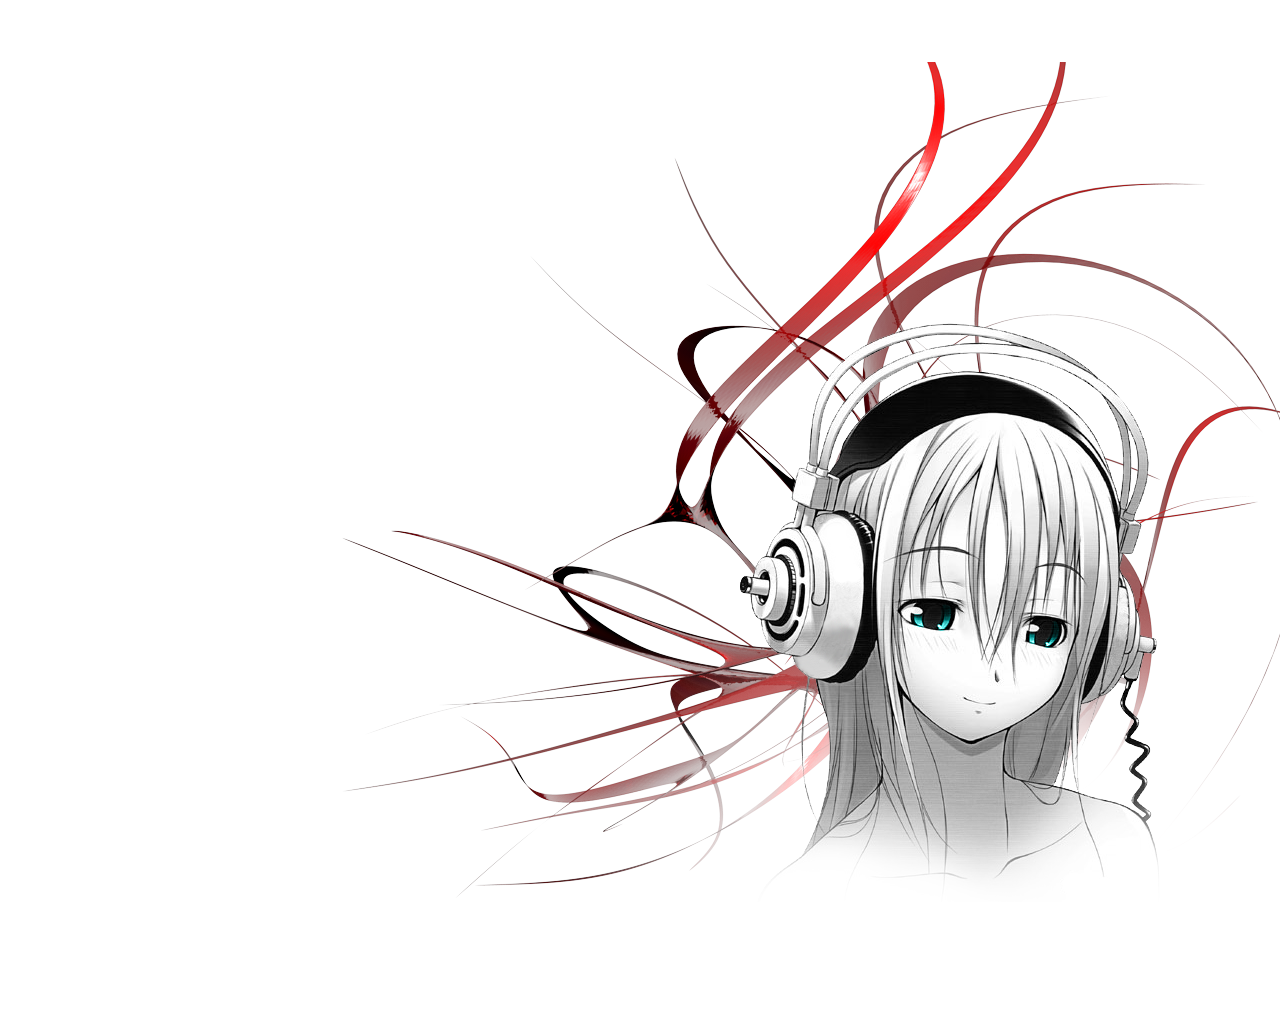 Wallpapers Anime Musica